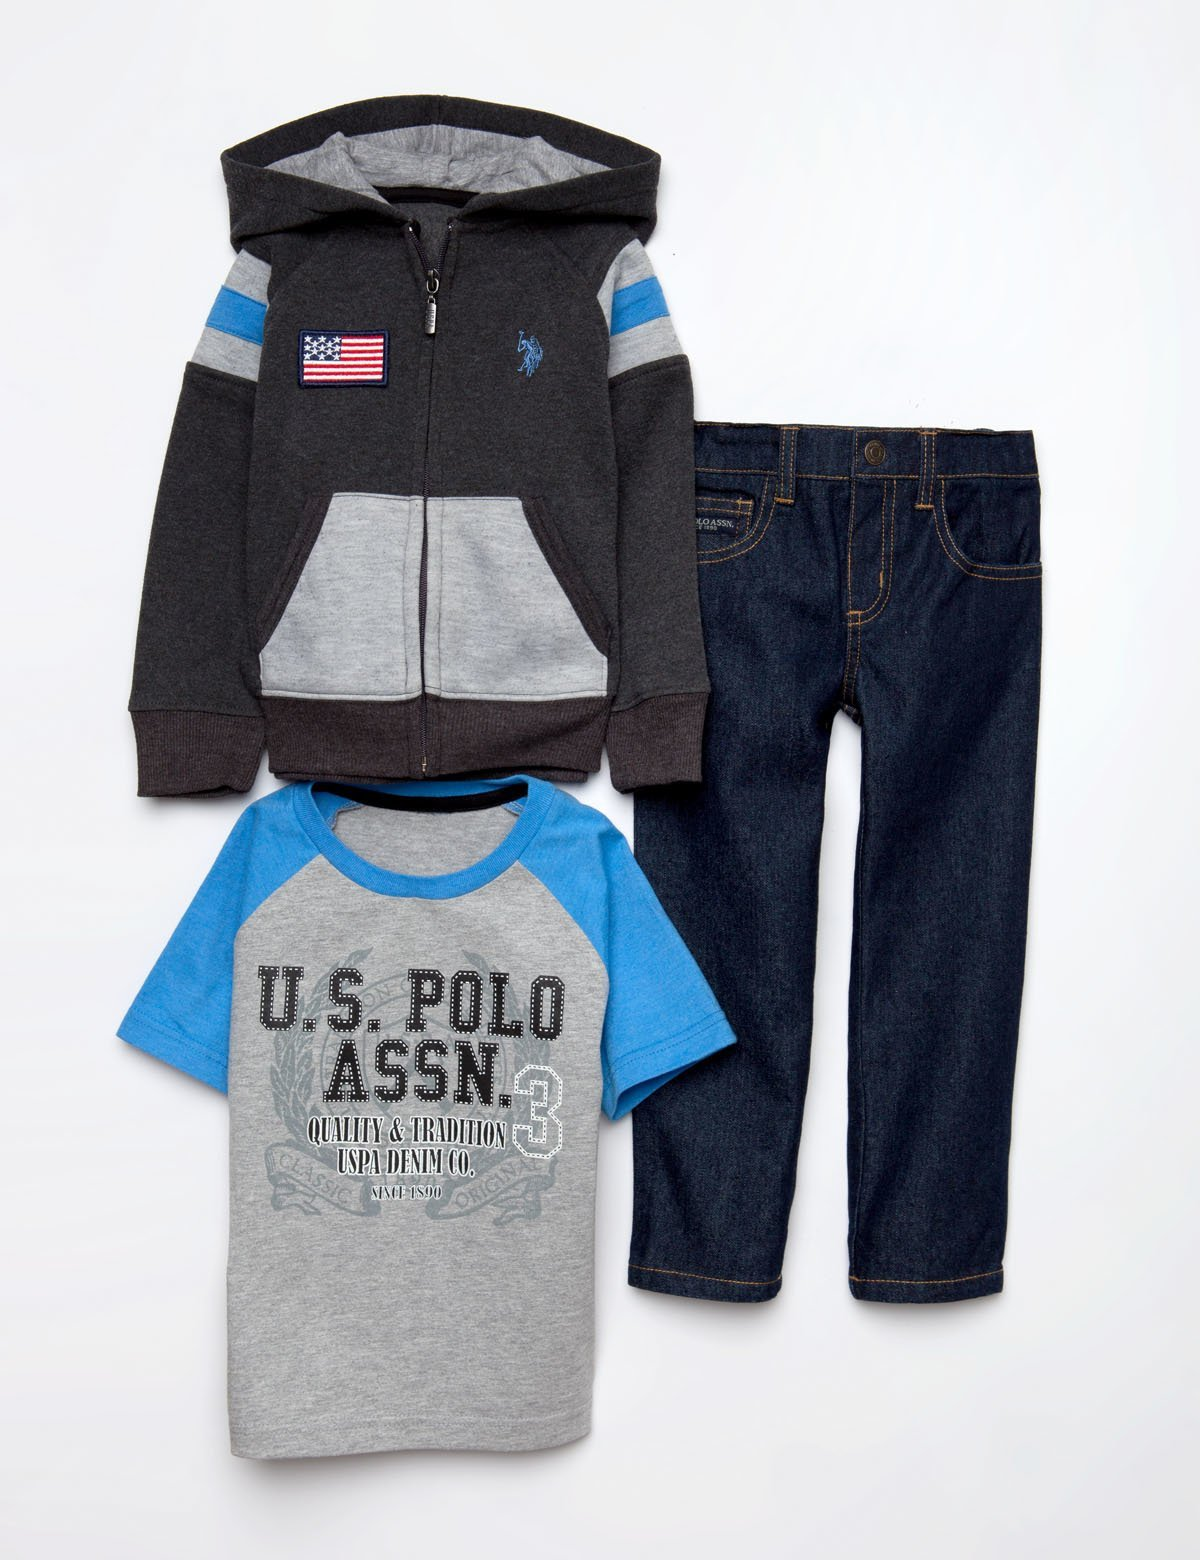 TODDLER BOYS 3 PIECE SET - FLEECE, TEE & JEANS